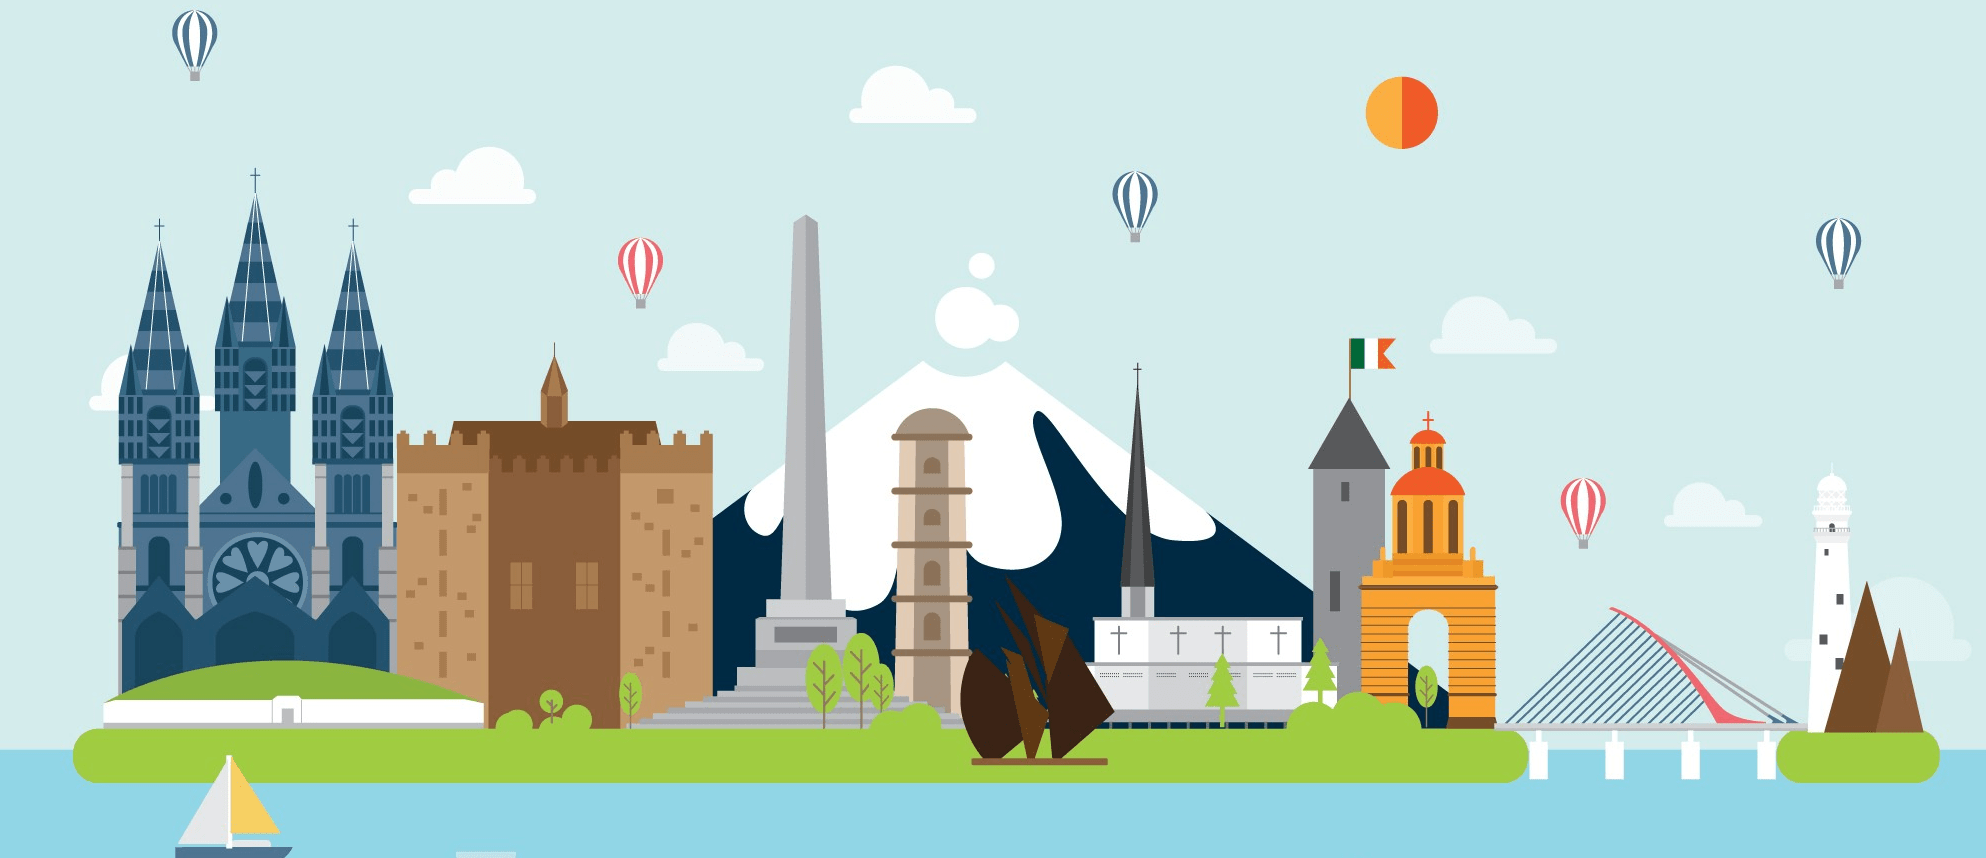 Geography Ireland Level 1 Activity For Kids